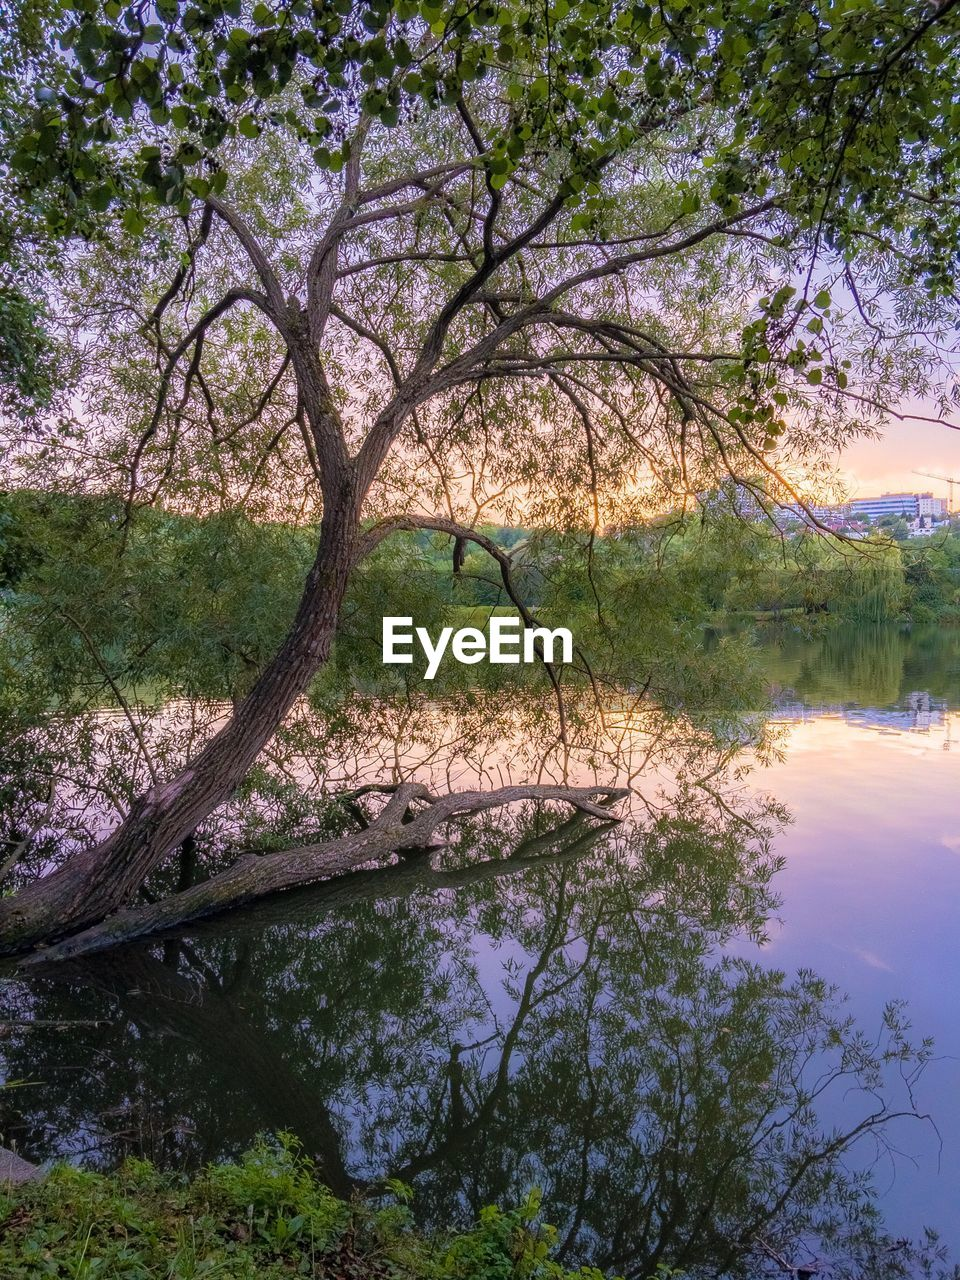 tree, nature, beauty in nature, tranquility, tranquil scene, scenics, reflection, water, outdoors, lake, day, no people, branch, landscape, bare tree, sky